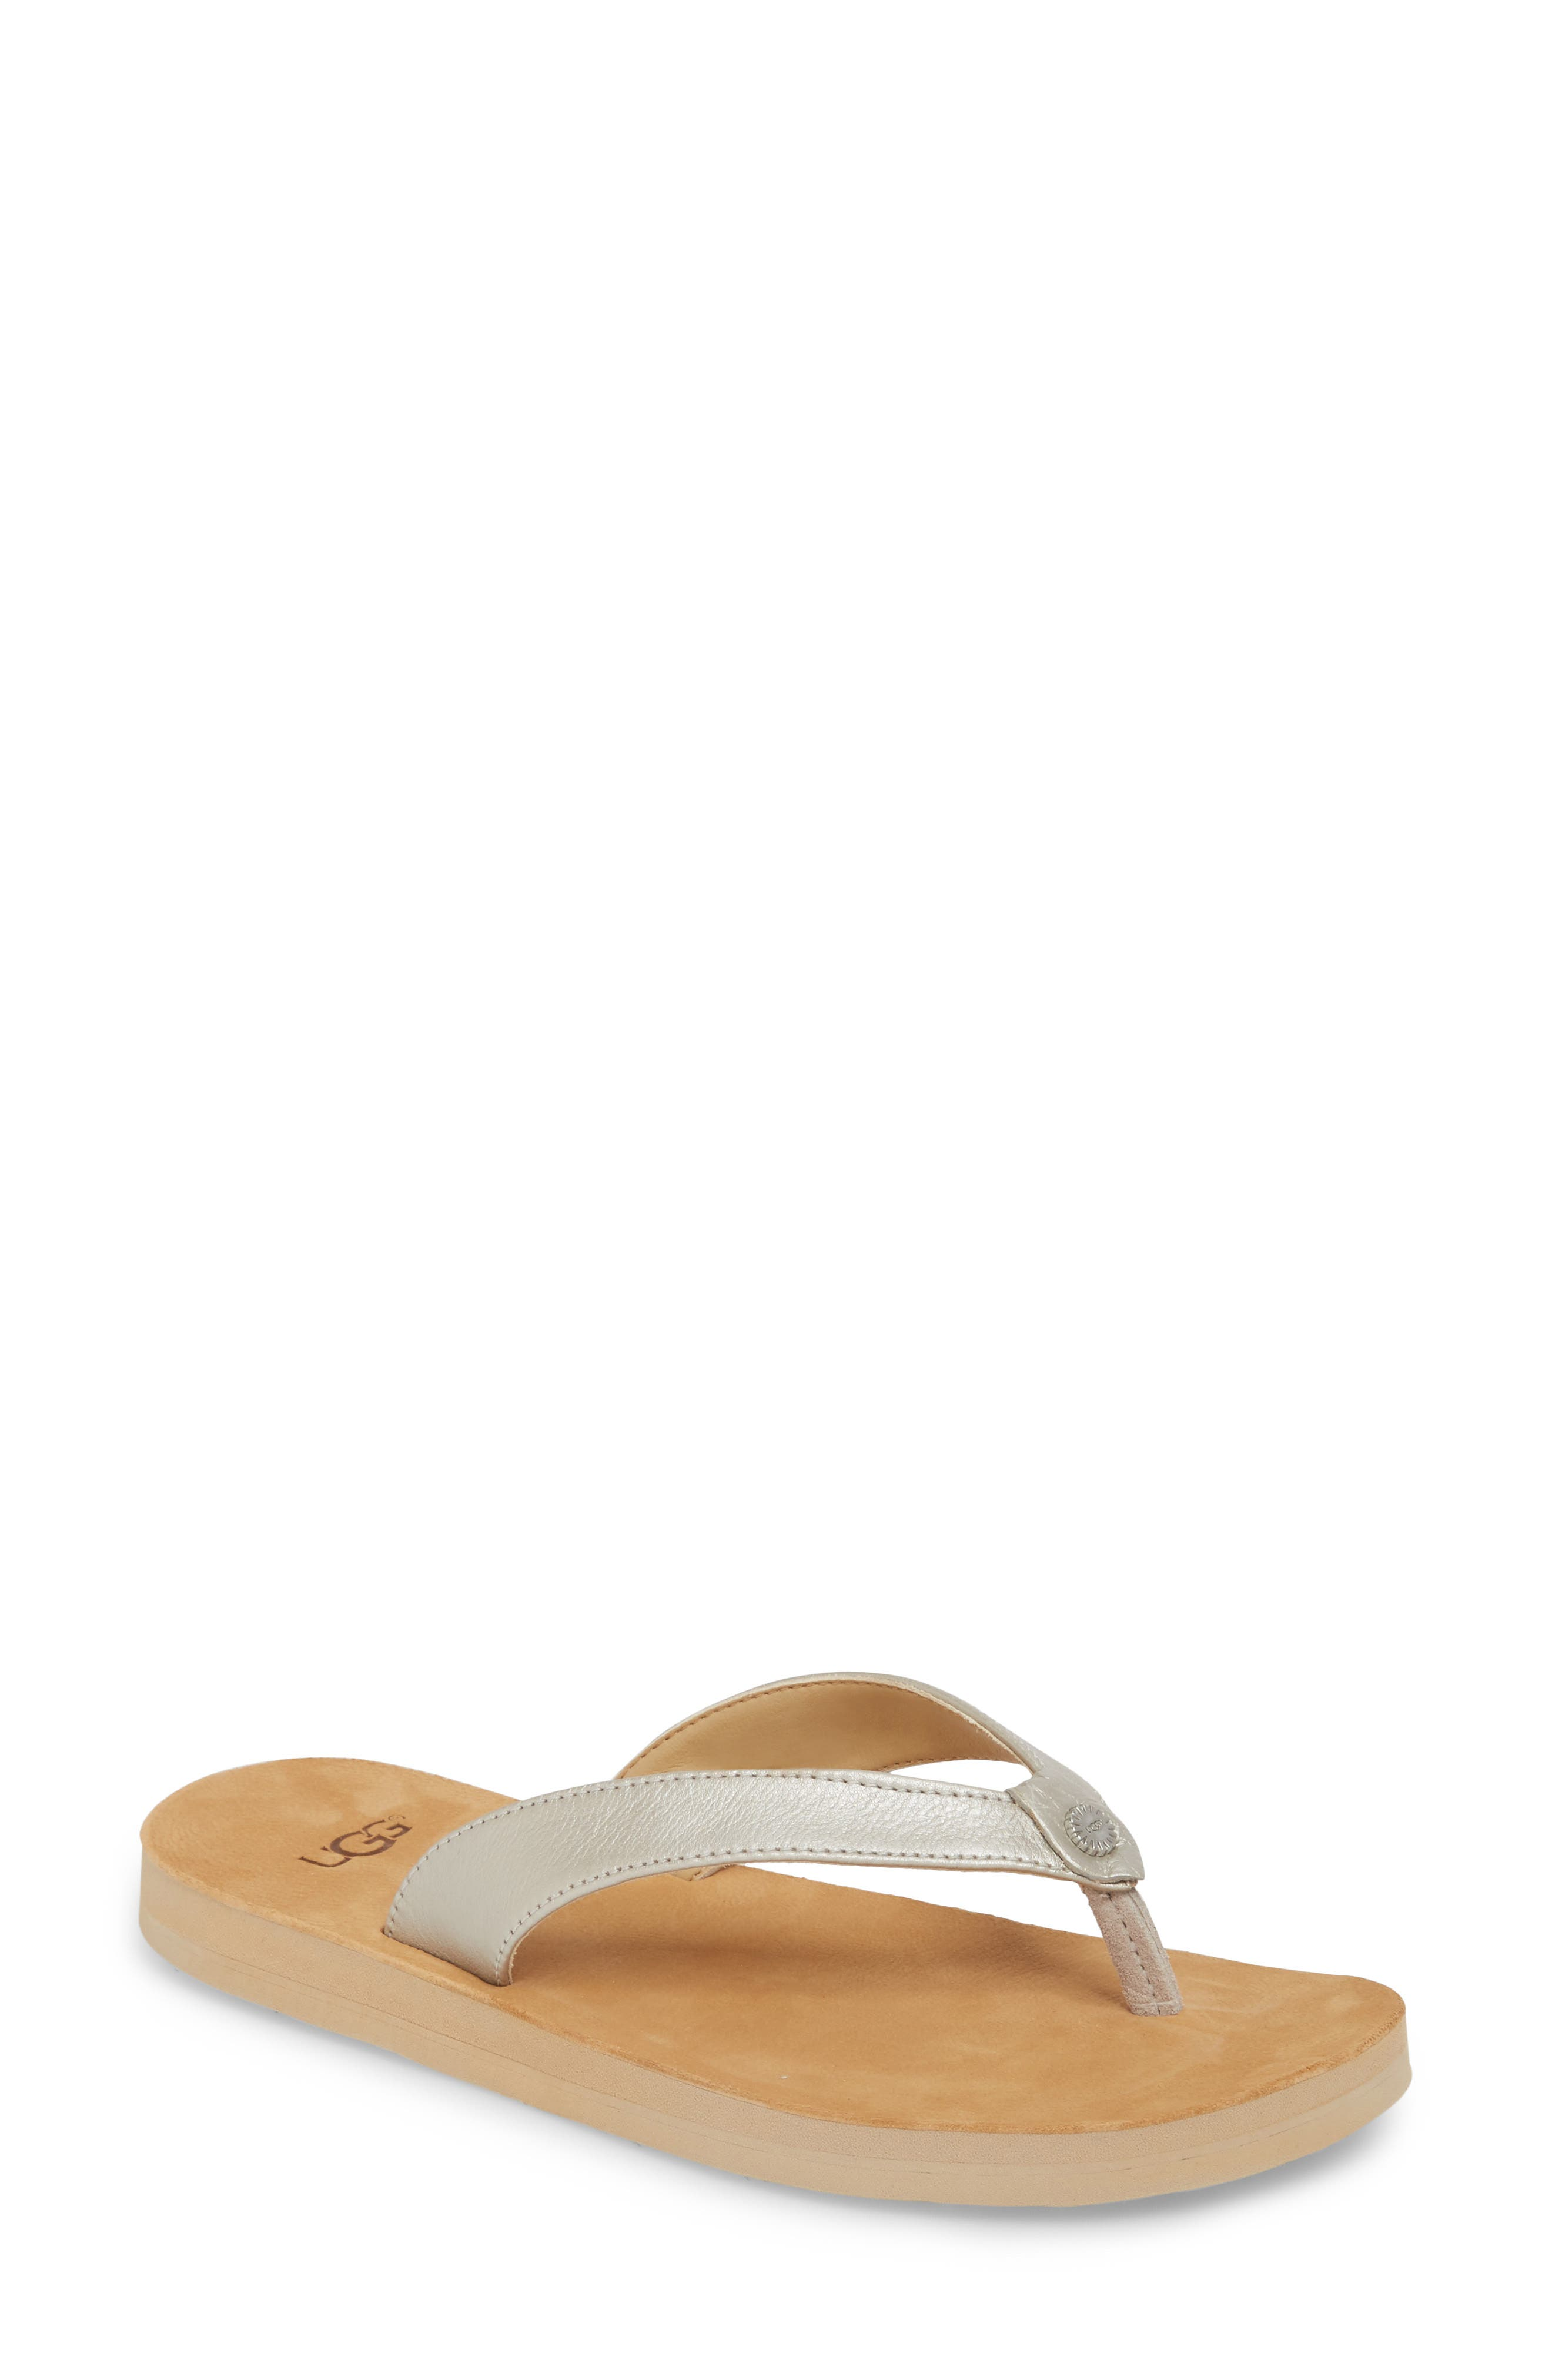 UGG<SUP>®</SUP>, Tawney Flip Flop, Main thumbnail 1, color, SILVER LEATHER